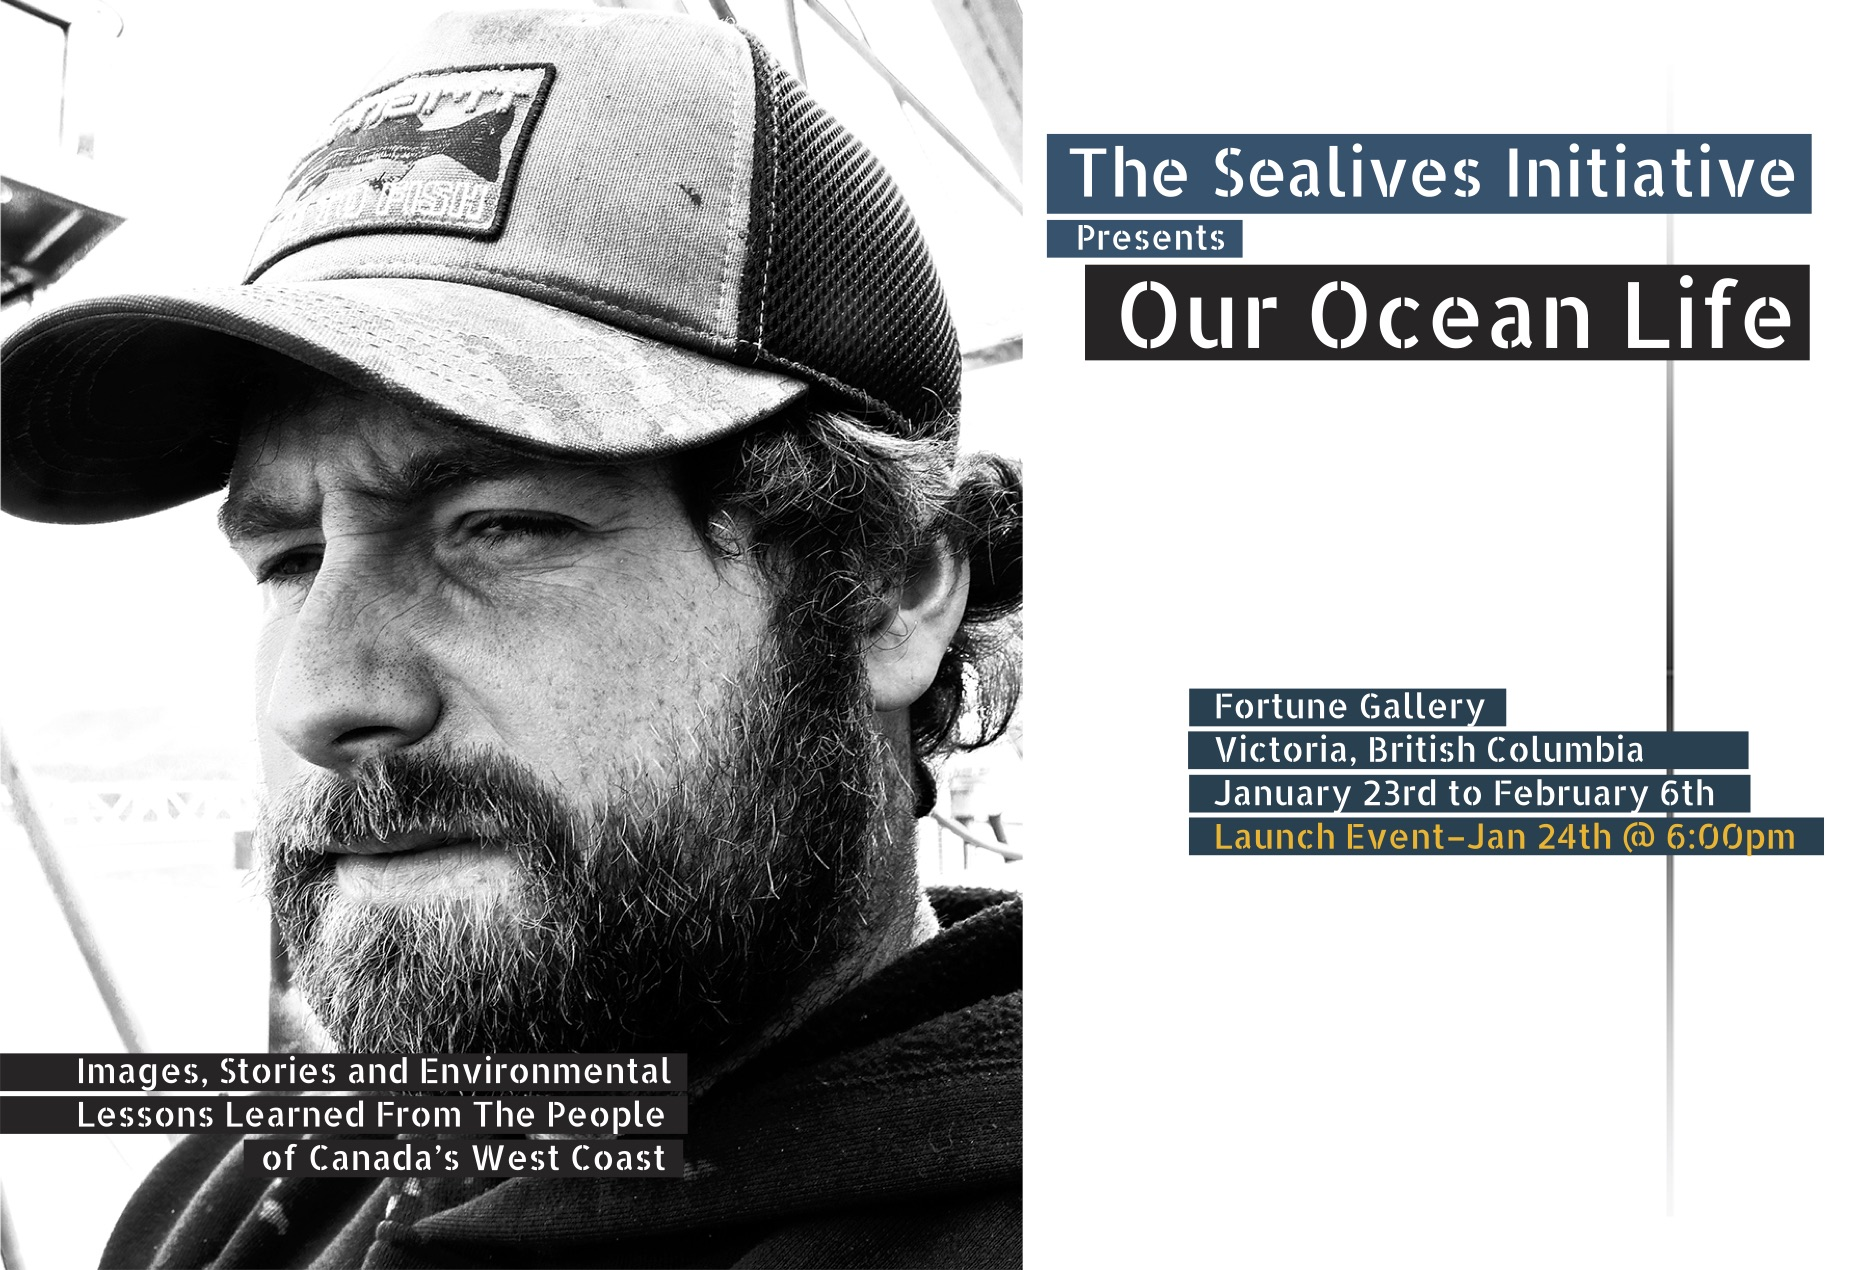 The Sealives Initiative - Our Ocean Life - January 23rd - February 6th